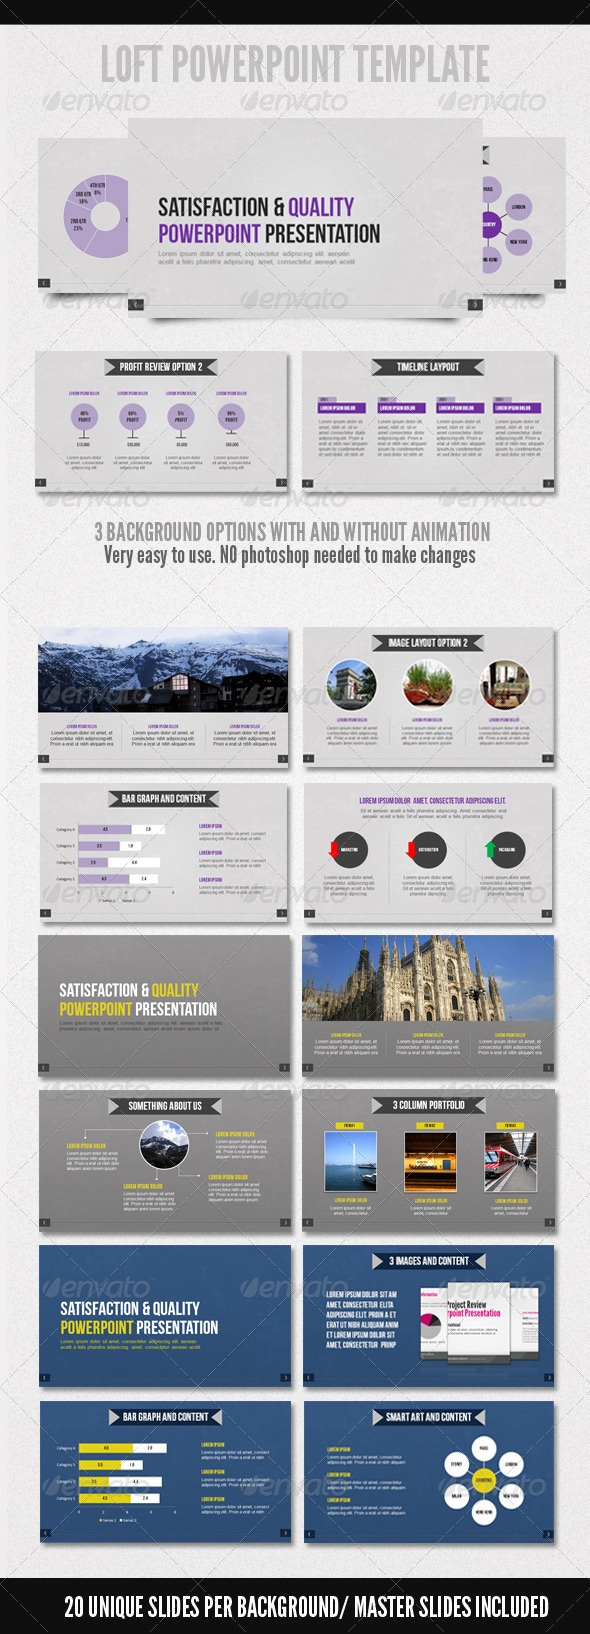 PowerPoint Presentation Template (11)